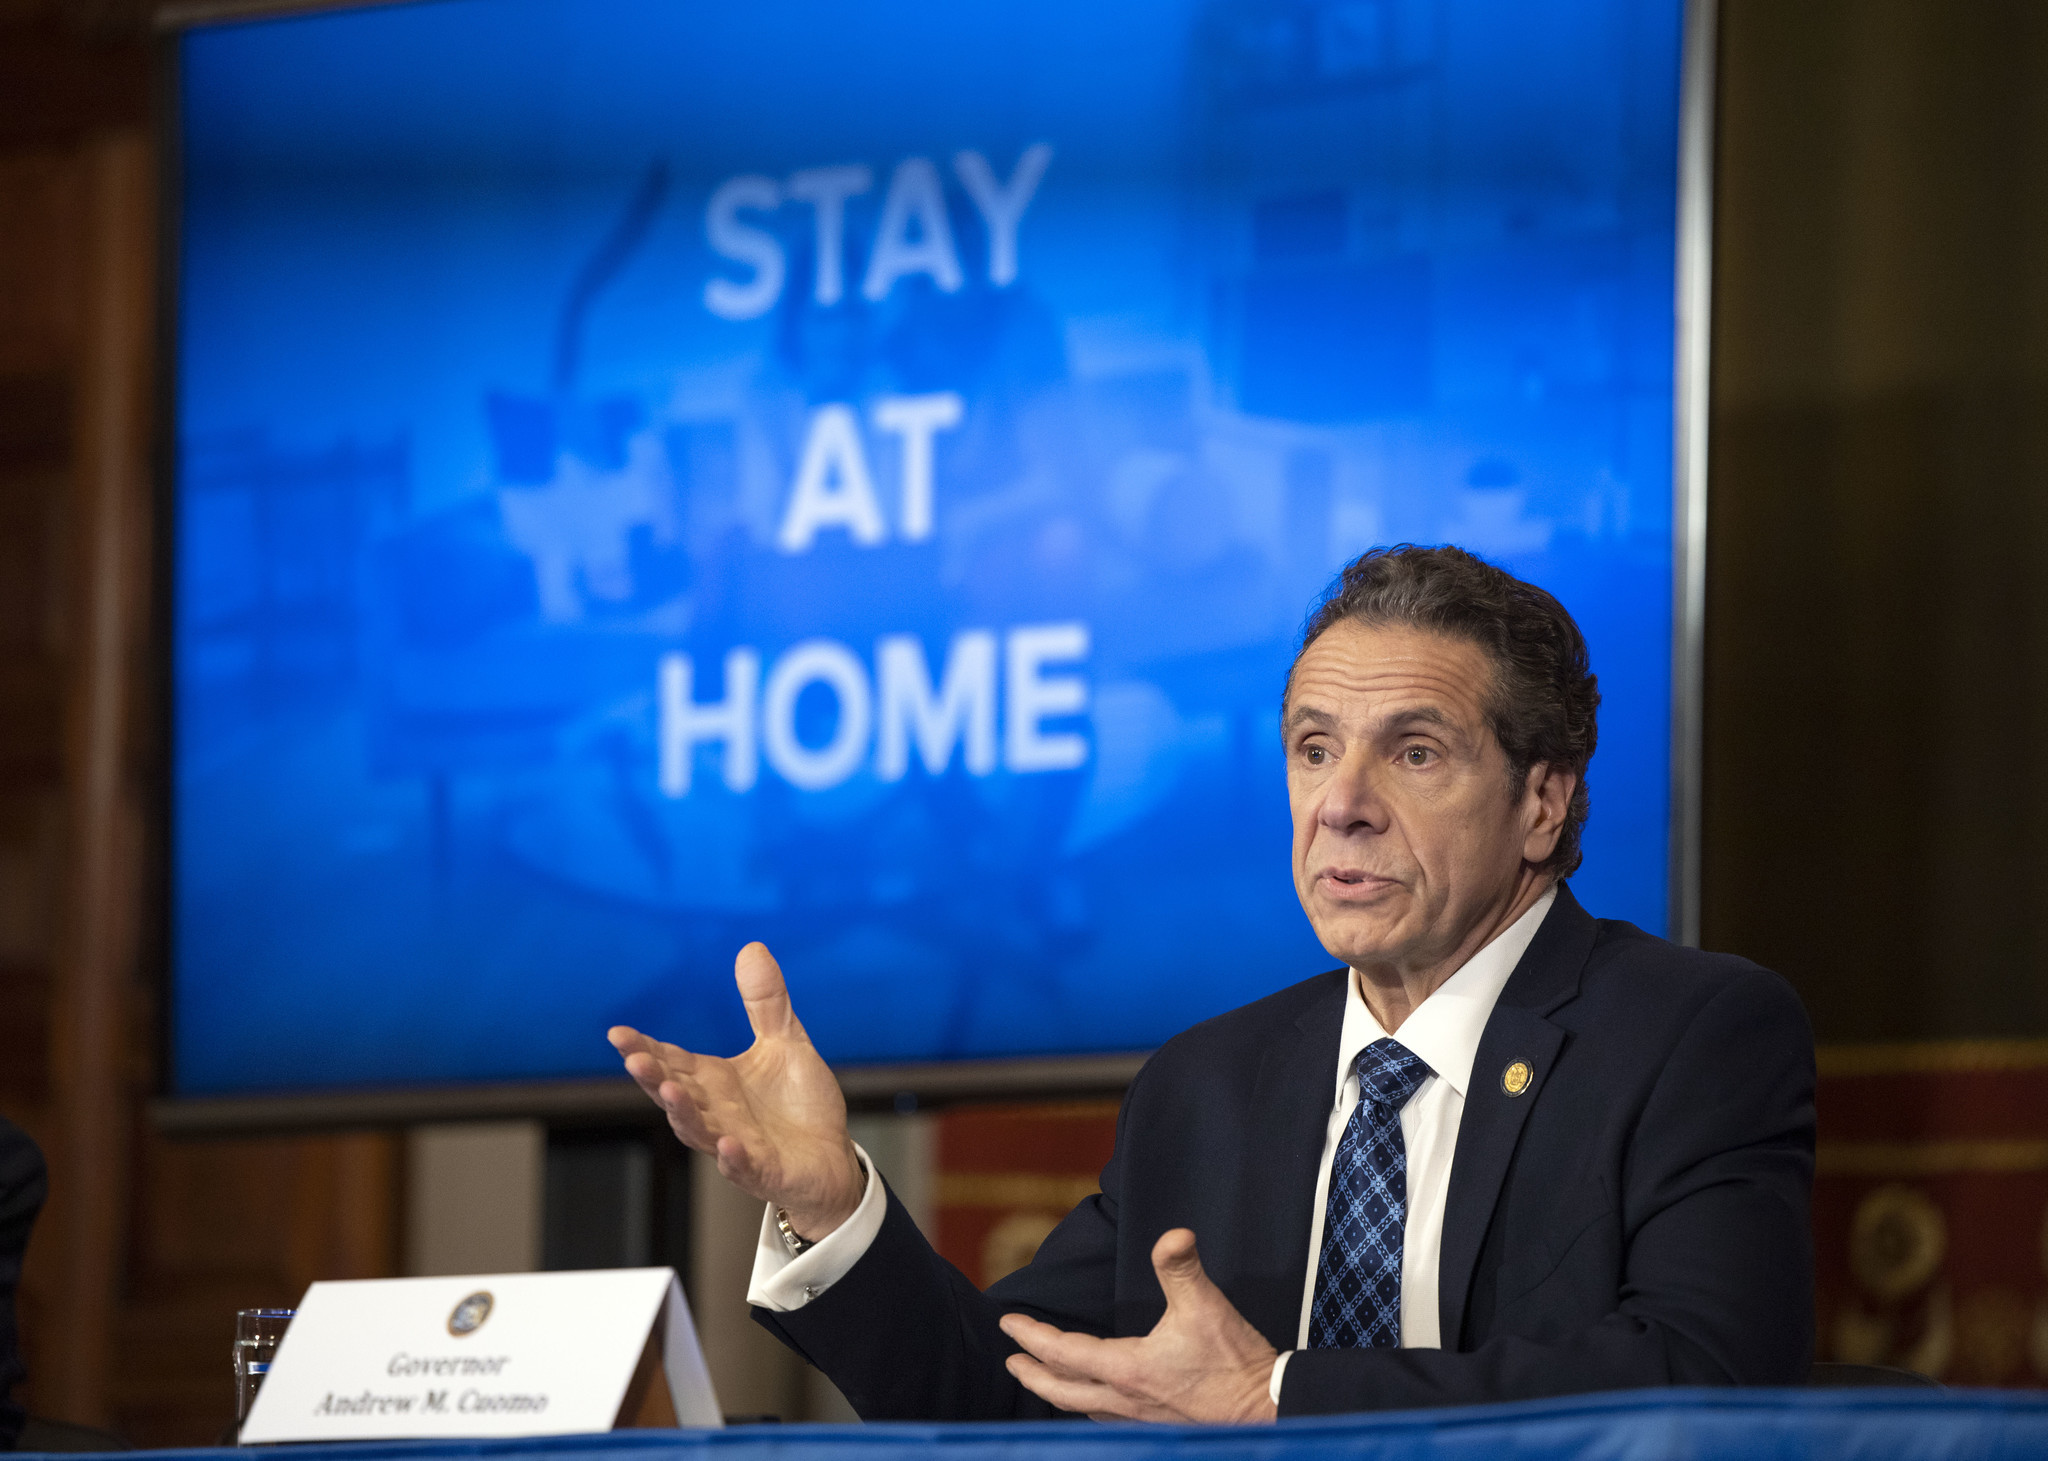 Cuomo extends 'New York on pause' order through end of April, as coronavirus claims another 599 lives overnight